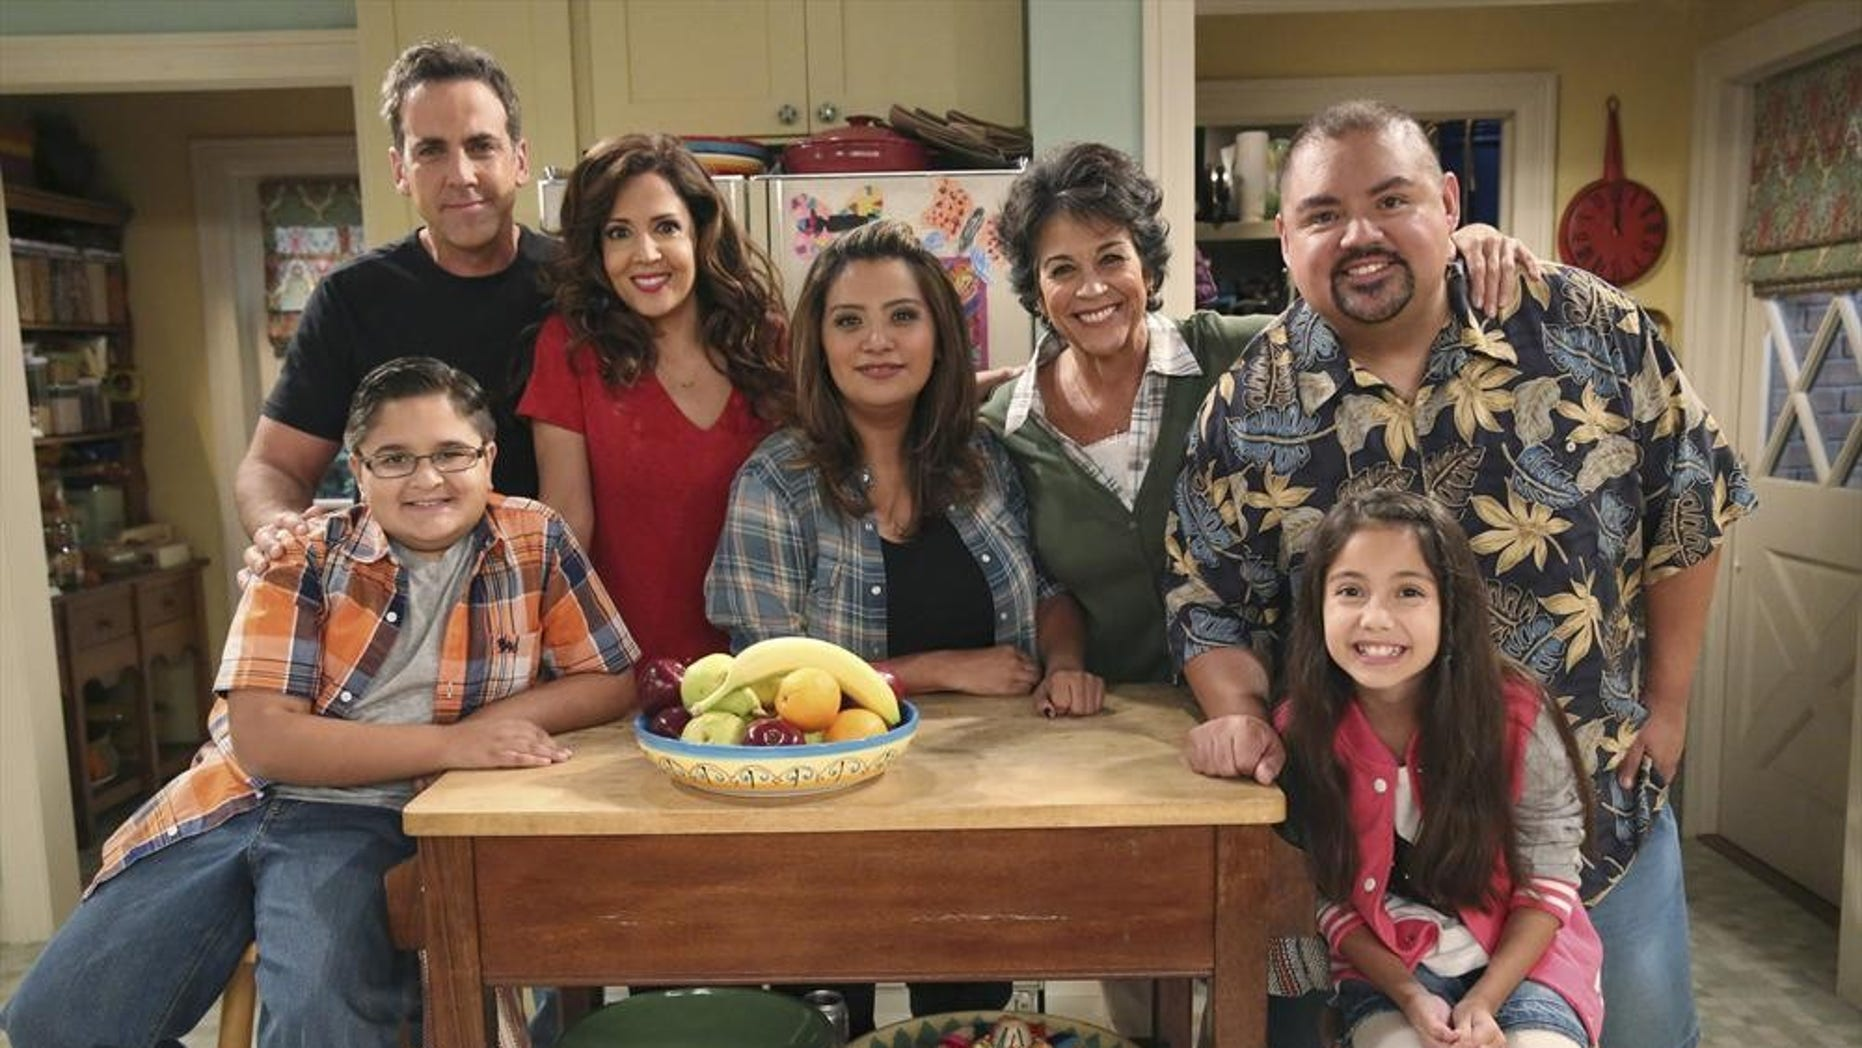 """CRISTELA - """"Equal Pay"""" - Cristela is frustrated when Trent asks her to work on a case that supports unequal pay for women in the workplace. Meanwhile, Cristela finds some satisfaction when she learns that Daniela has been making more money than Felix for years...which she has kept as a secret...and Cristela is thus drawn into an emotional argument at home, on """"Cristela,"""" FRIDAY, OCTOBER 24 (8:31-9:00 p.m., ET), on the ABC Television Network. (ABC/Adam Taylor)JACOB GUENTHER, CARLOS PONCE, MARIA CANALS-BARRERA, CRISTELA ALONZO, TERRI HOYOS, GABRIEL IGLESIAS, ISABELLA DAY"""